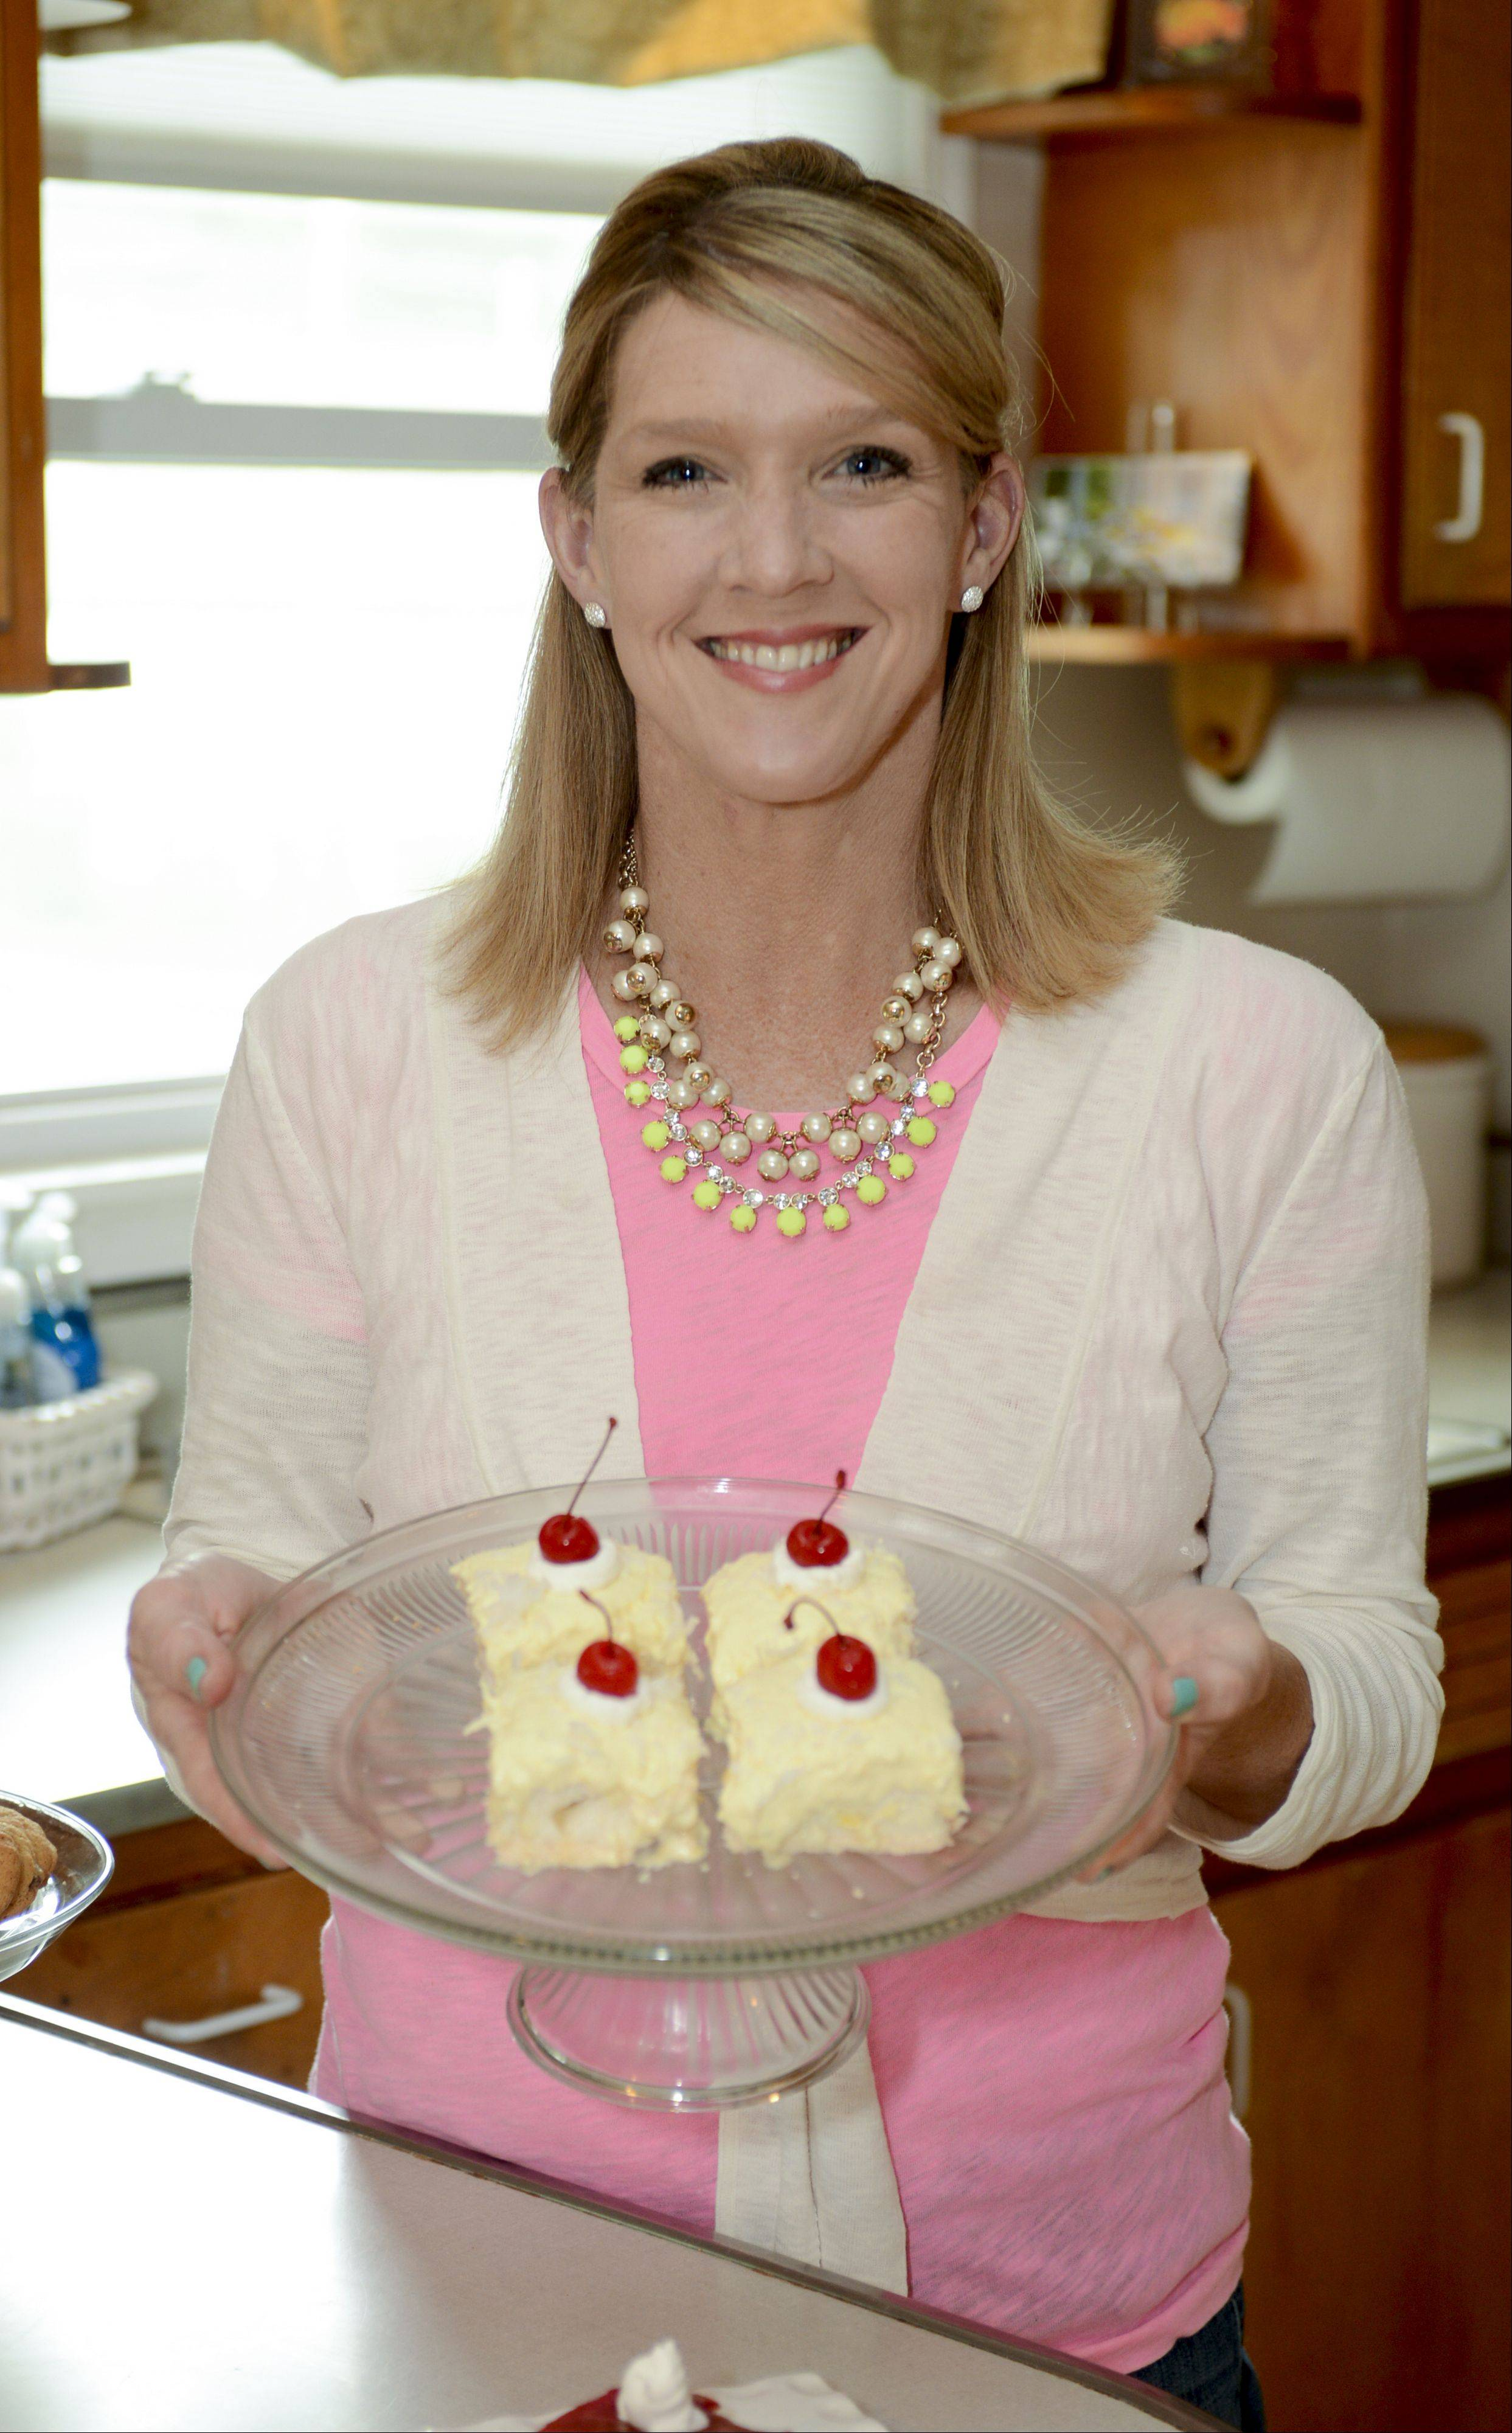 Karen Felker made her Angel Lemon Custard on a national TV talk show where it won a healthier dessert contest.